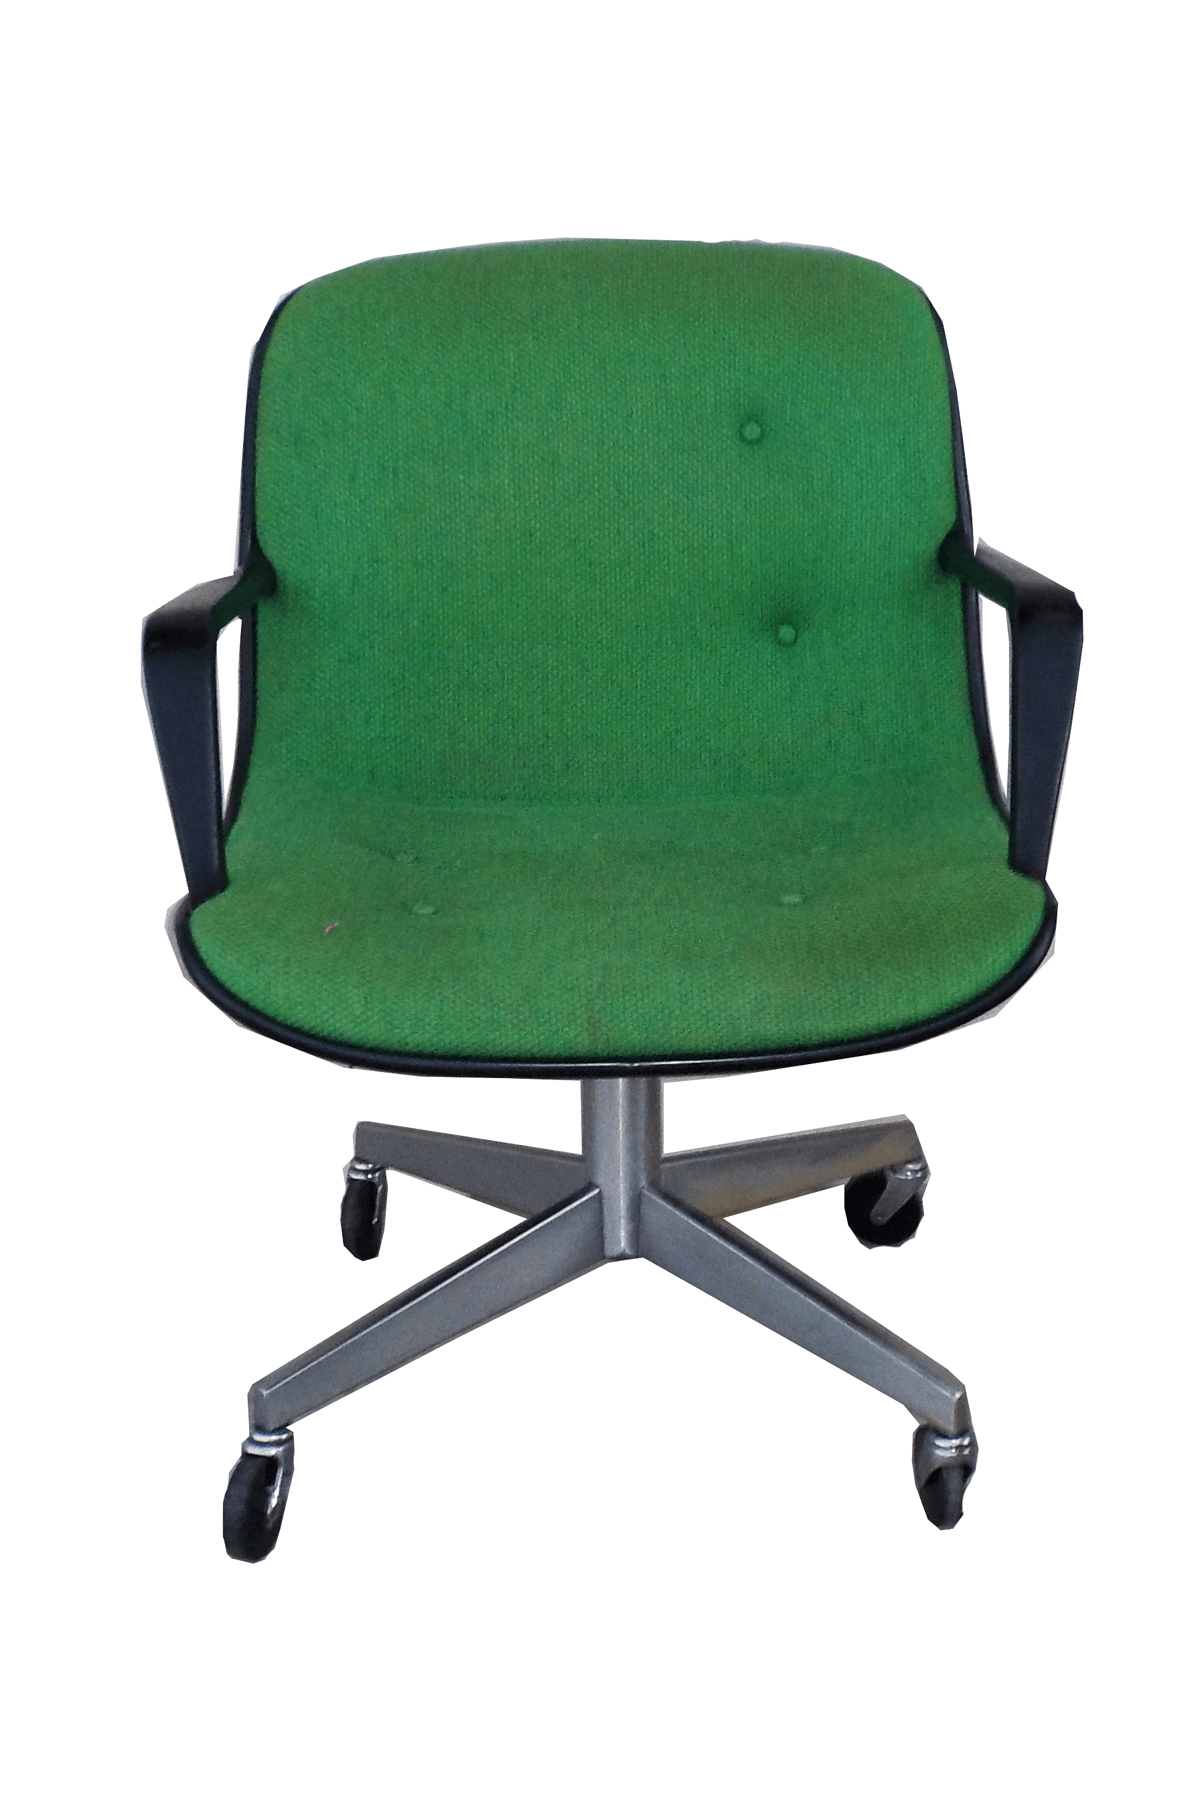 steelcase vintage chair cheap lounge chairs for bedroom mid century modern green office